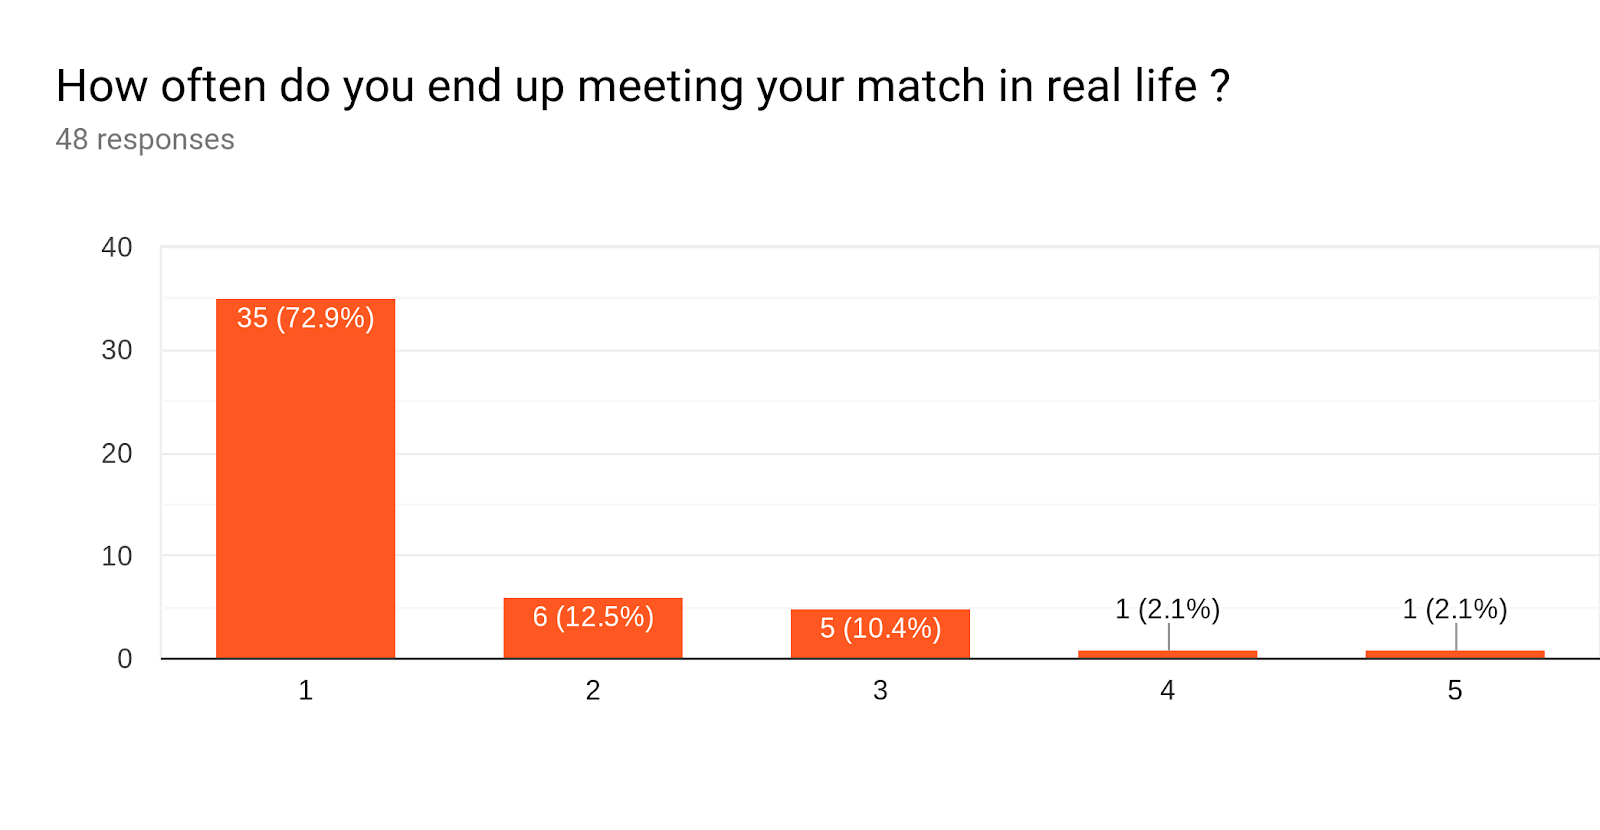 Forms response chart. Question title: How often do you end up meeting your match in real life ?. Number of responses: 48 responses.